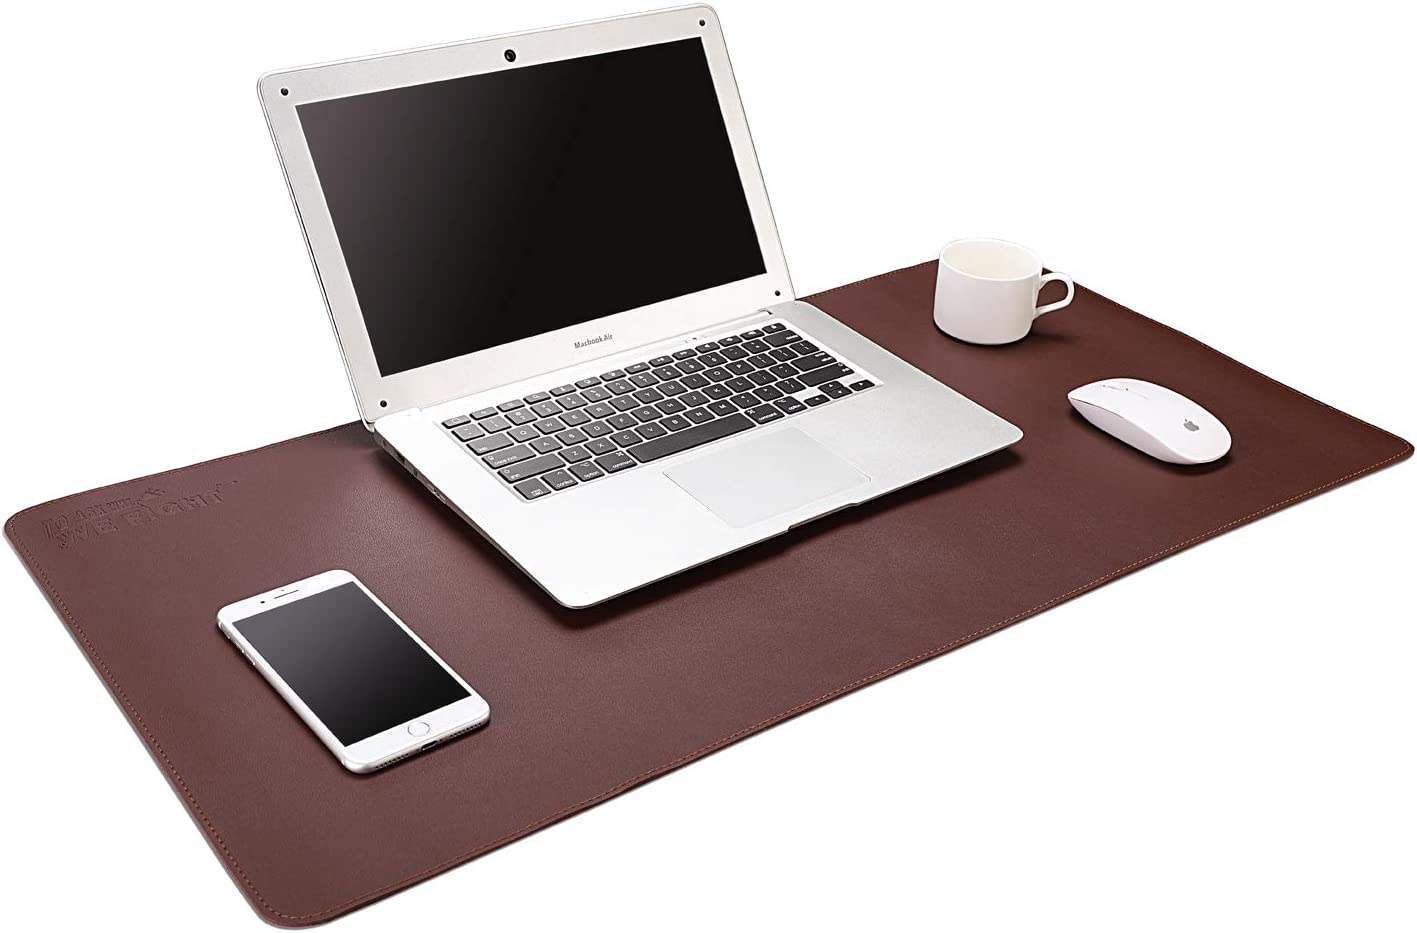 "ACSTEP Office Desk Pad, 31.5""x15.7"" Ultrathin Desk Pad Protector Waterproof PU Leather Desk Blotter Pad Desk Writing Mat Dark Brown for Office,Home"